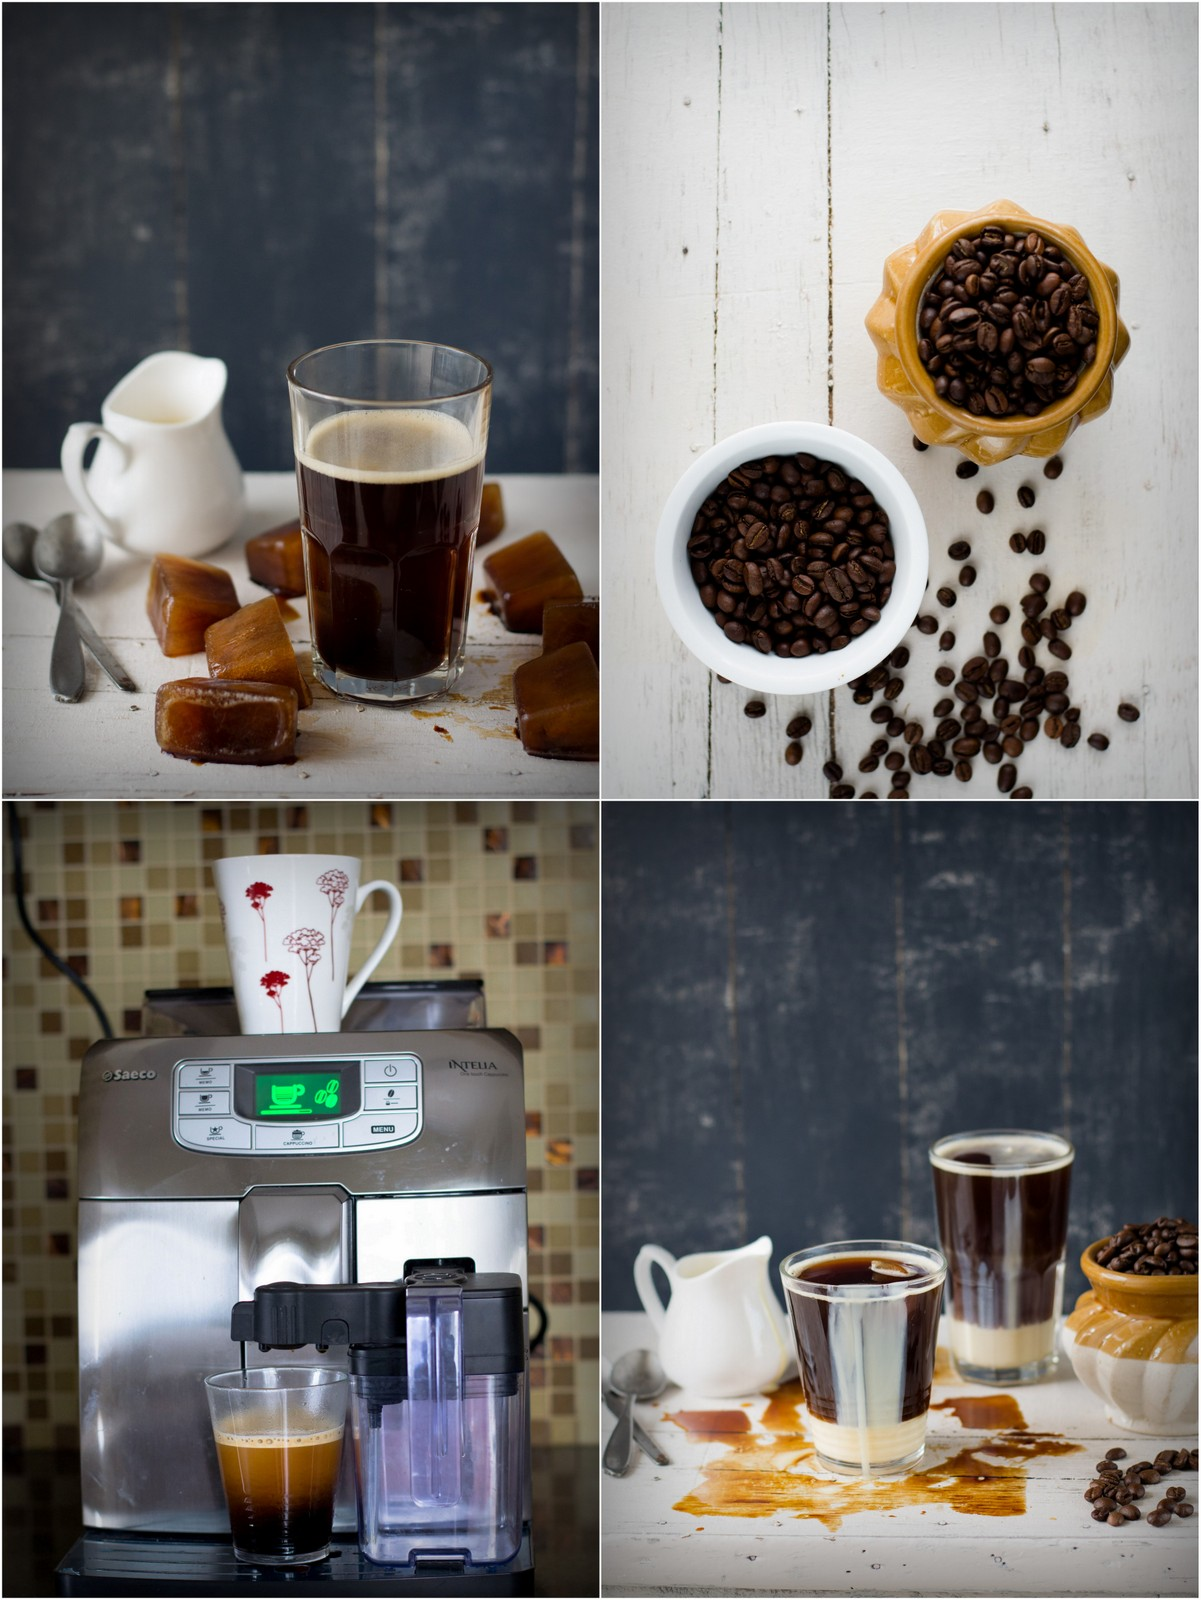 how to make vietnamese coffee with espresso